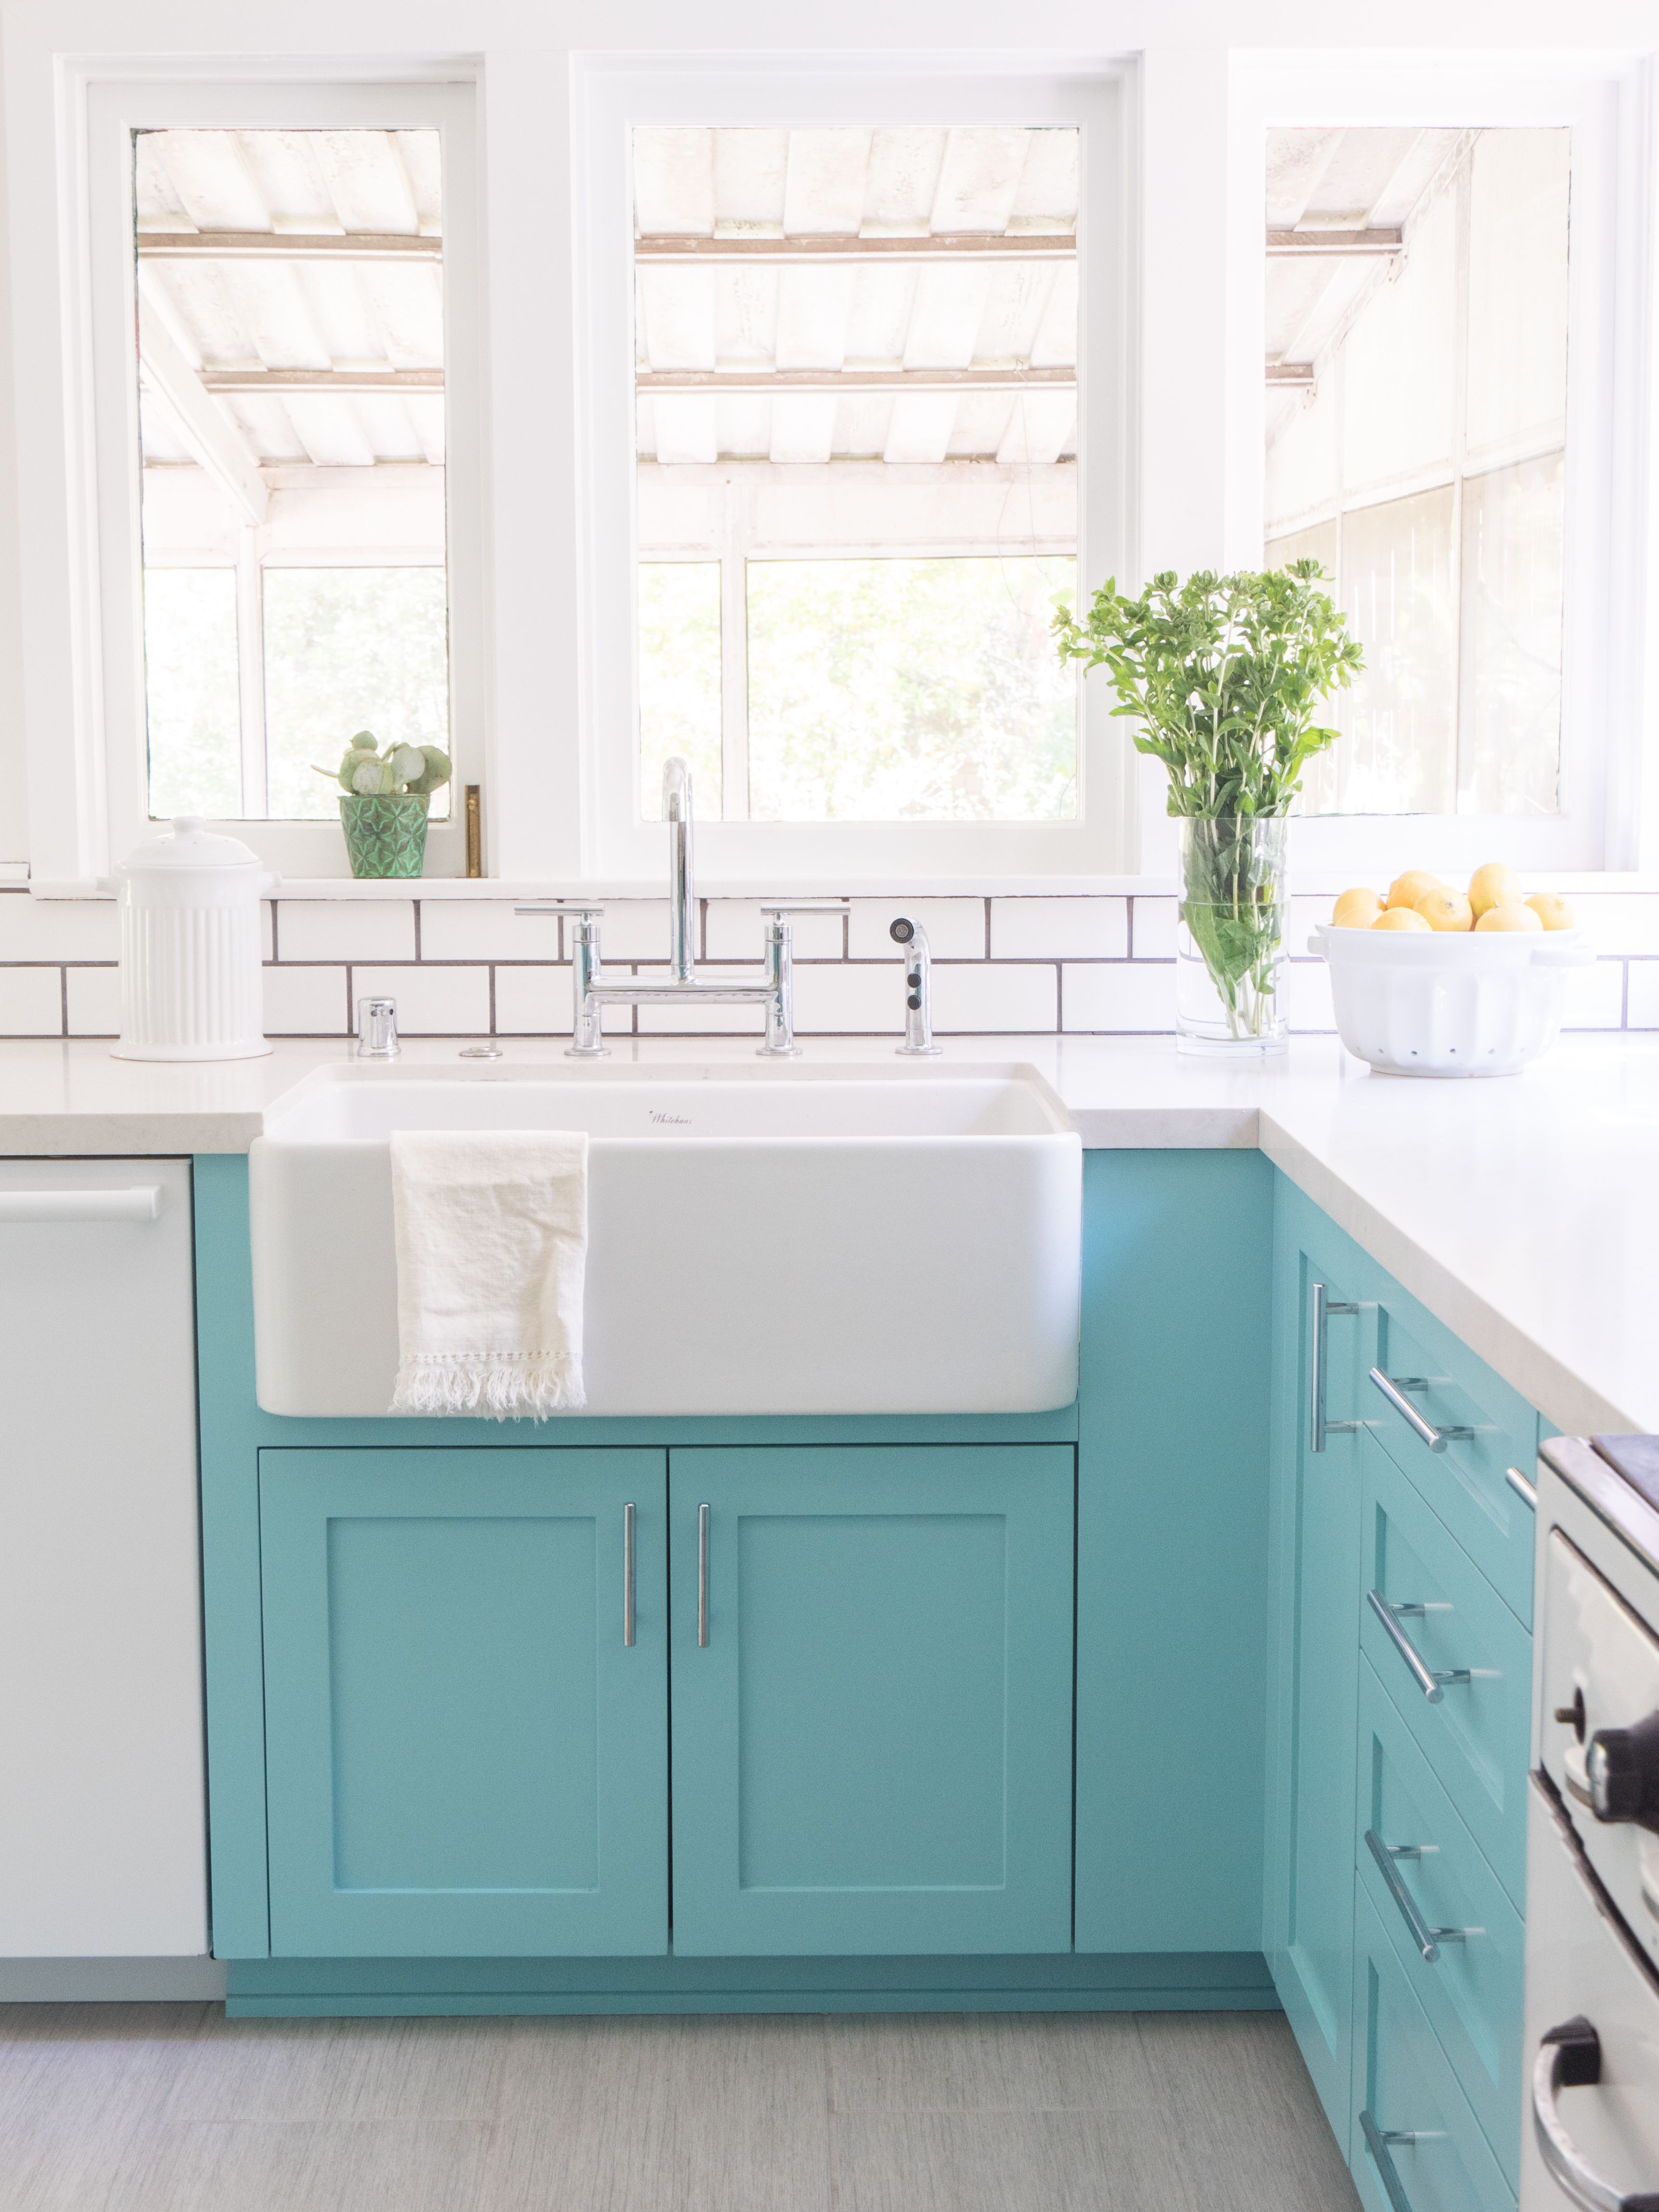 A 1920s Kitchen Gets a Bright, Modern Makeover | Kitchens, Farmhouse ...